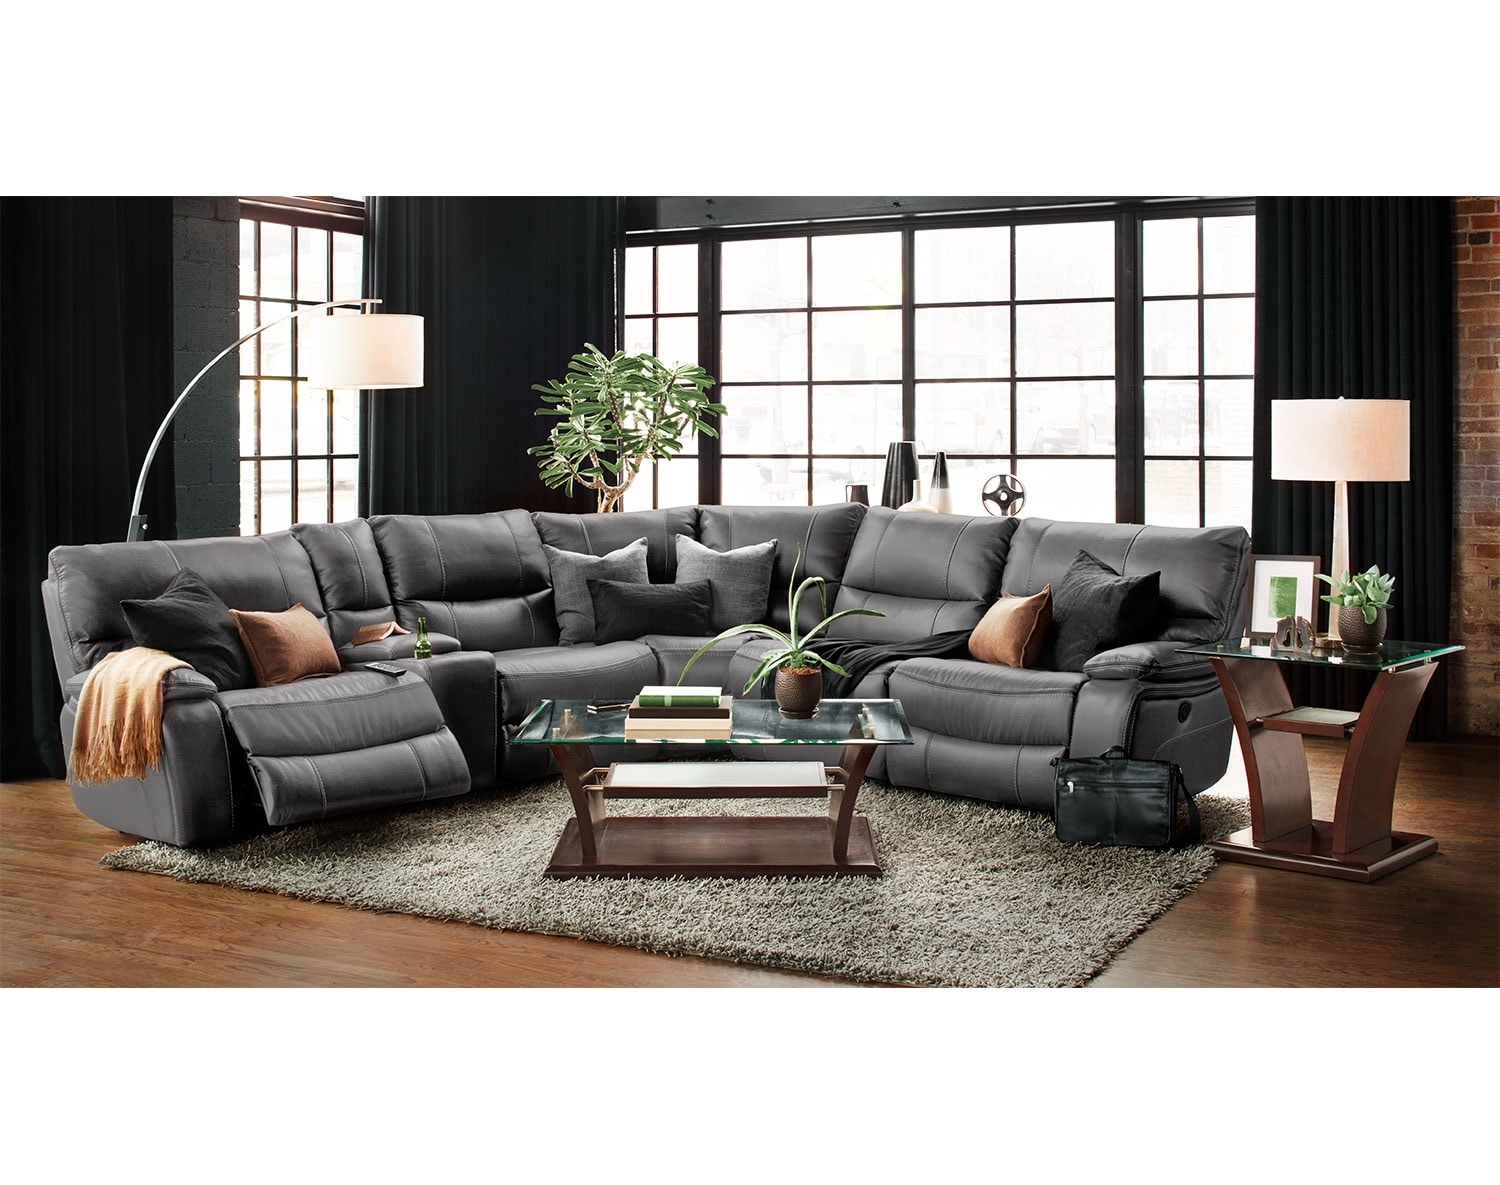 the orlando collection - gray | value city furniture